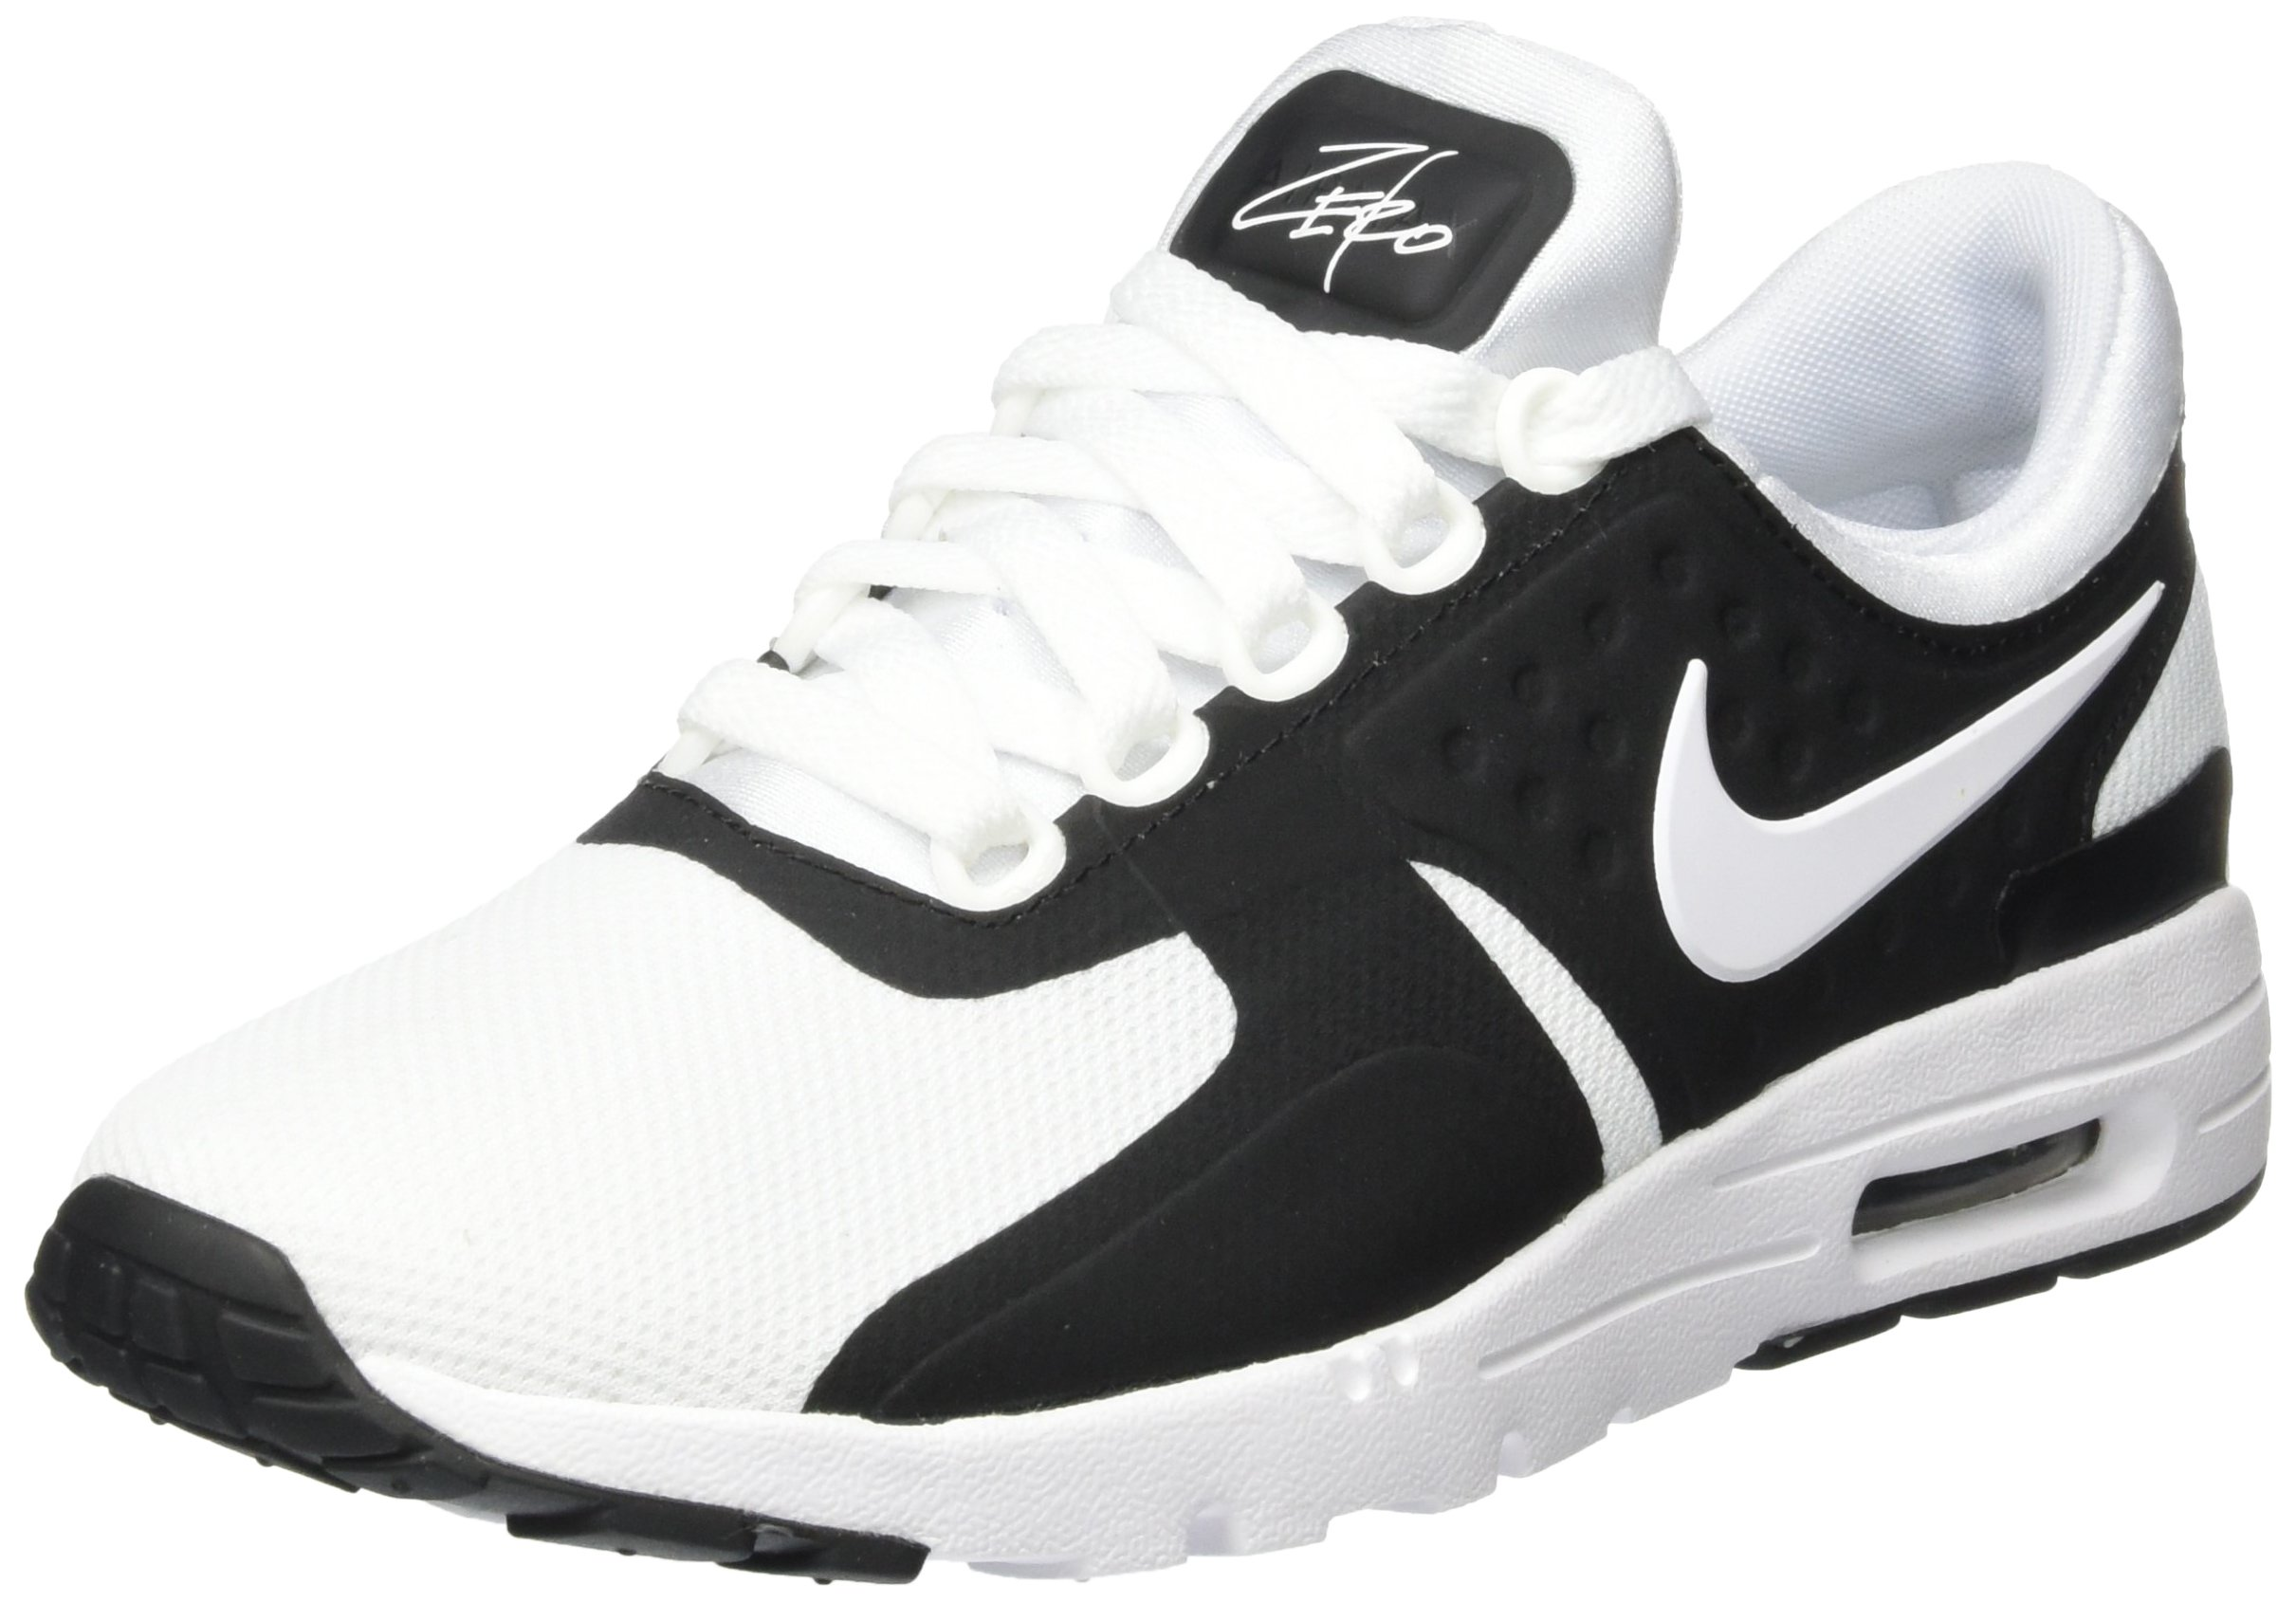 sale retailer 3f57d b6ab2 NIKE Air Max Zero Womens Running Shoes Black/White (8.5)